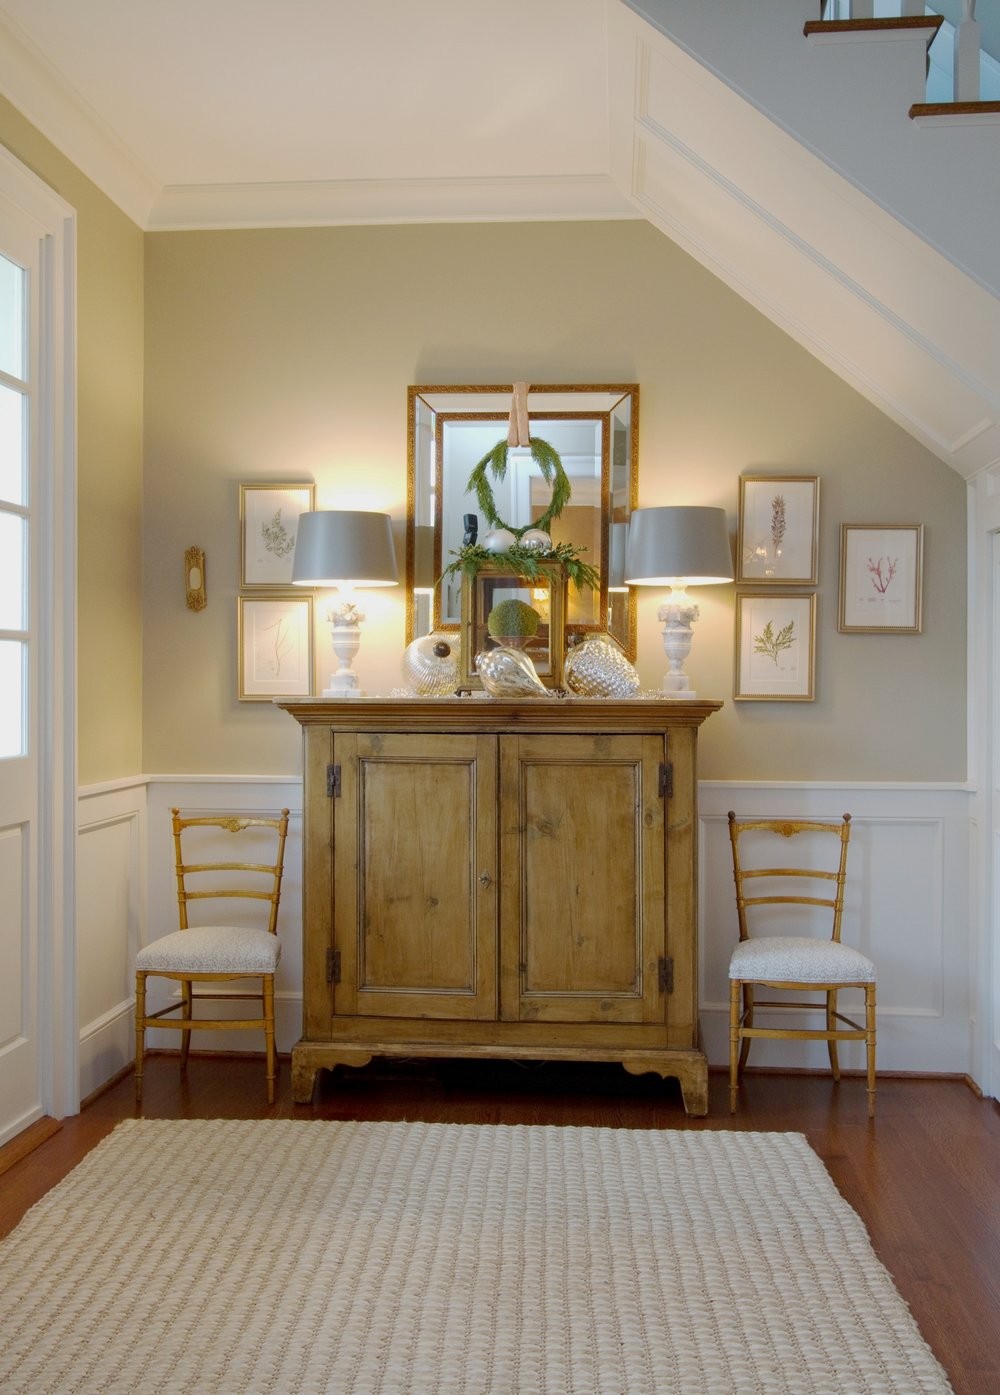 traditional interior design entryway antique pine chest, gold and white chairs